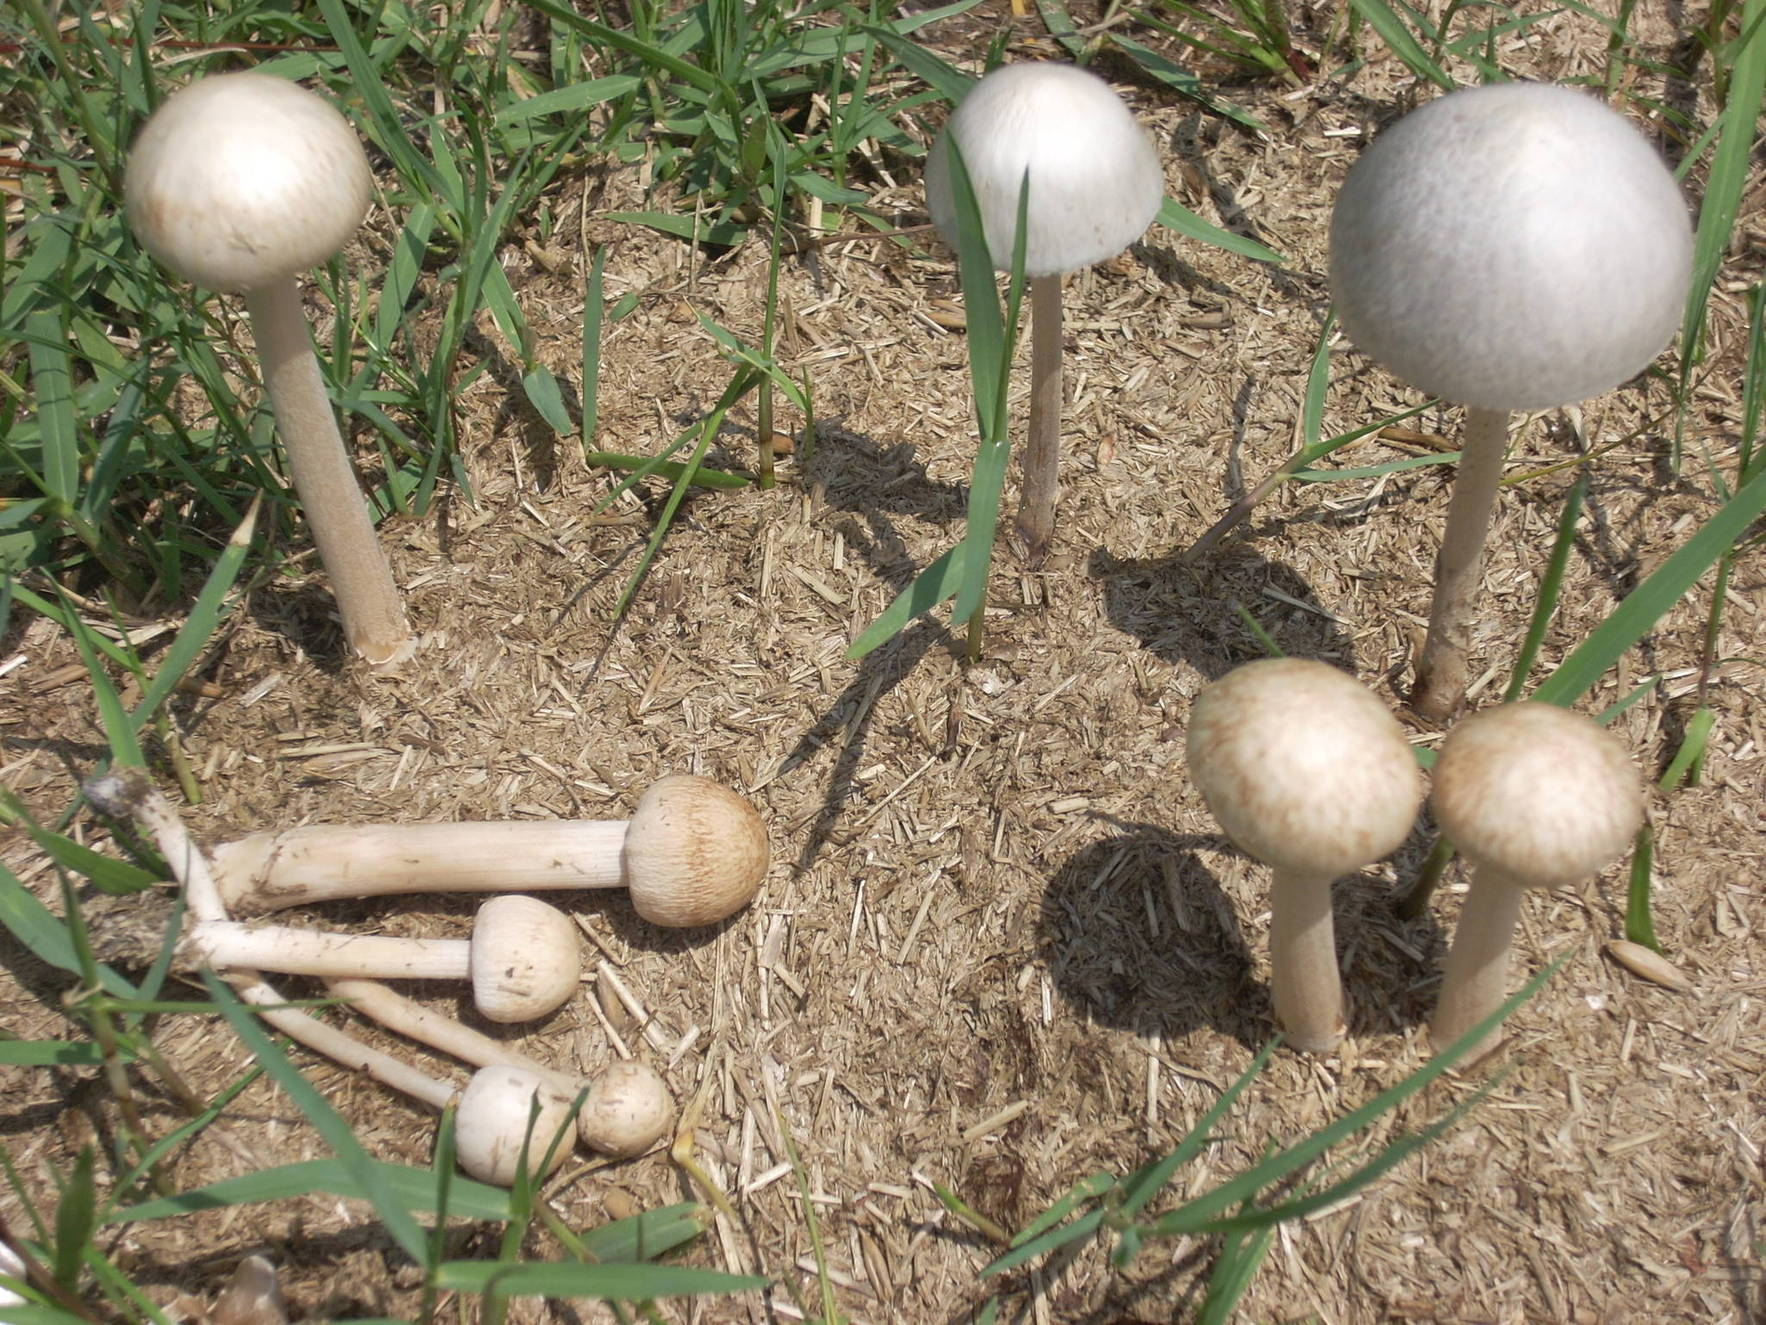 mushrooms in horse manure - The Psychedelic Experience ...